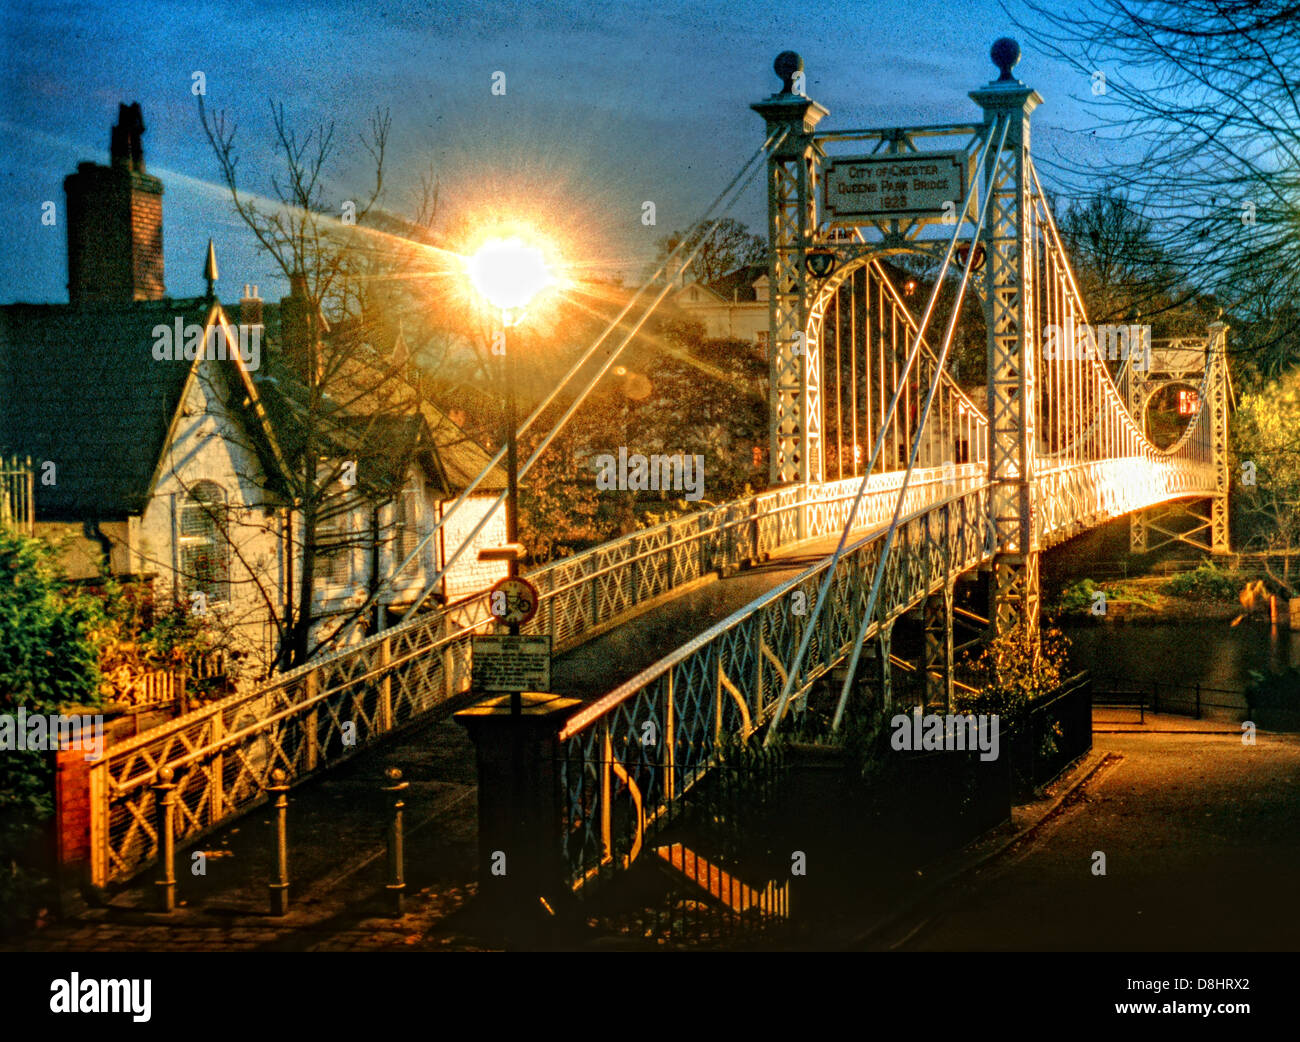 Night,shot,nightshot,taken,at,night,foot,bridge,Die,Queens,Park,Fußgaengerbrücke,ueber,den,Fluss,Dee,in,Chester,Nordwestengland,iron,metal,cable,historic,history,cycle,path,cycleway,way,Chester,City,at,dusk,North West England,UK GB Great Britain bridges United Kingdom,Gotonysmith,City Centre,City,Centre,@hotpixUK,Buy Pictures of,Buy Images Of